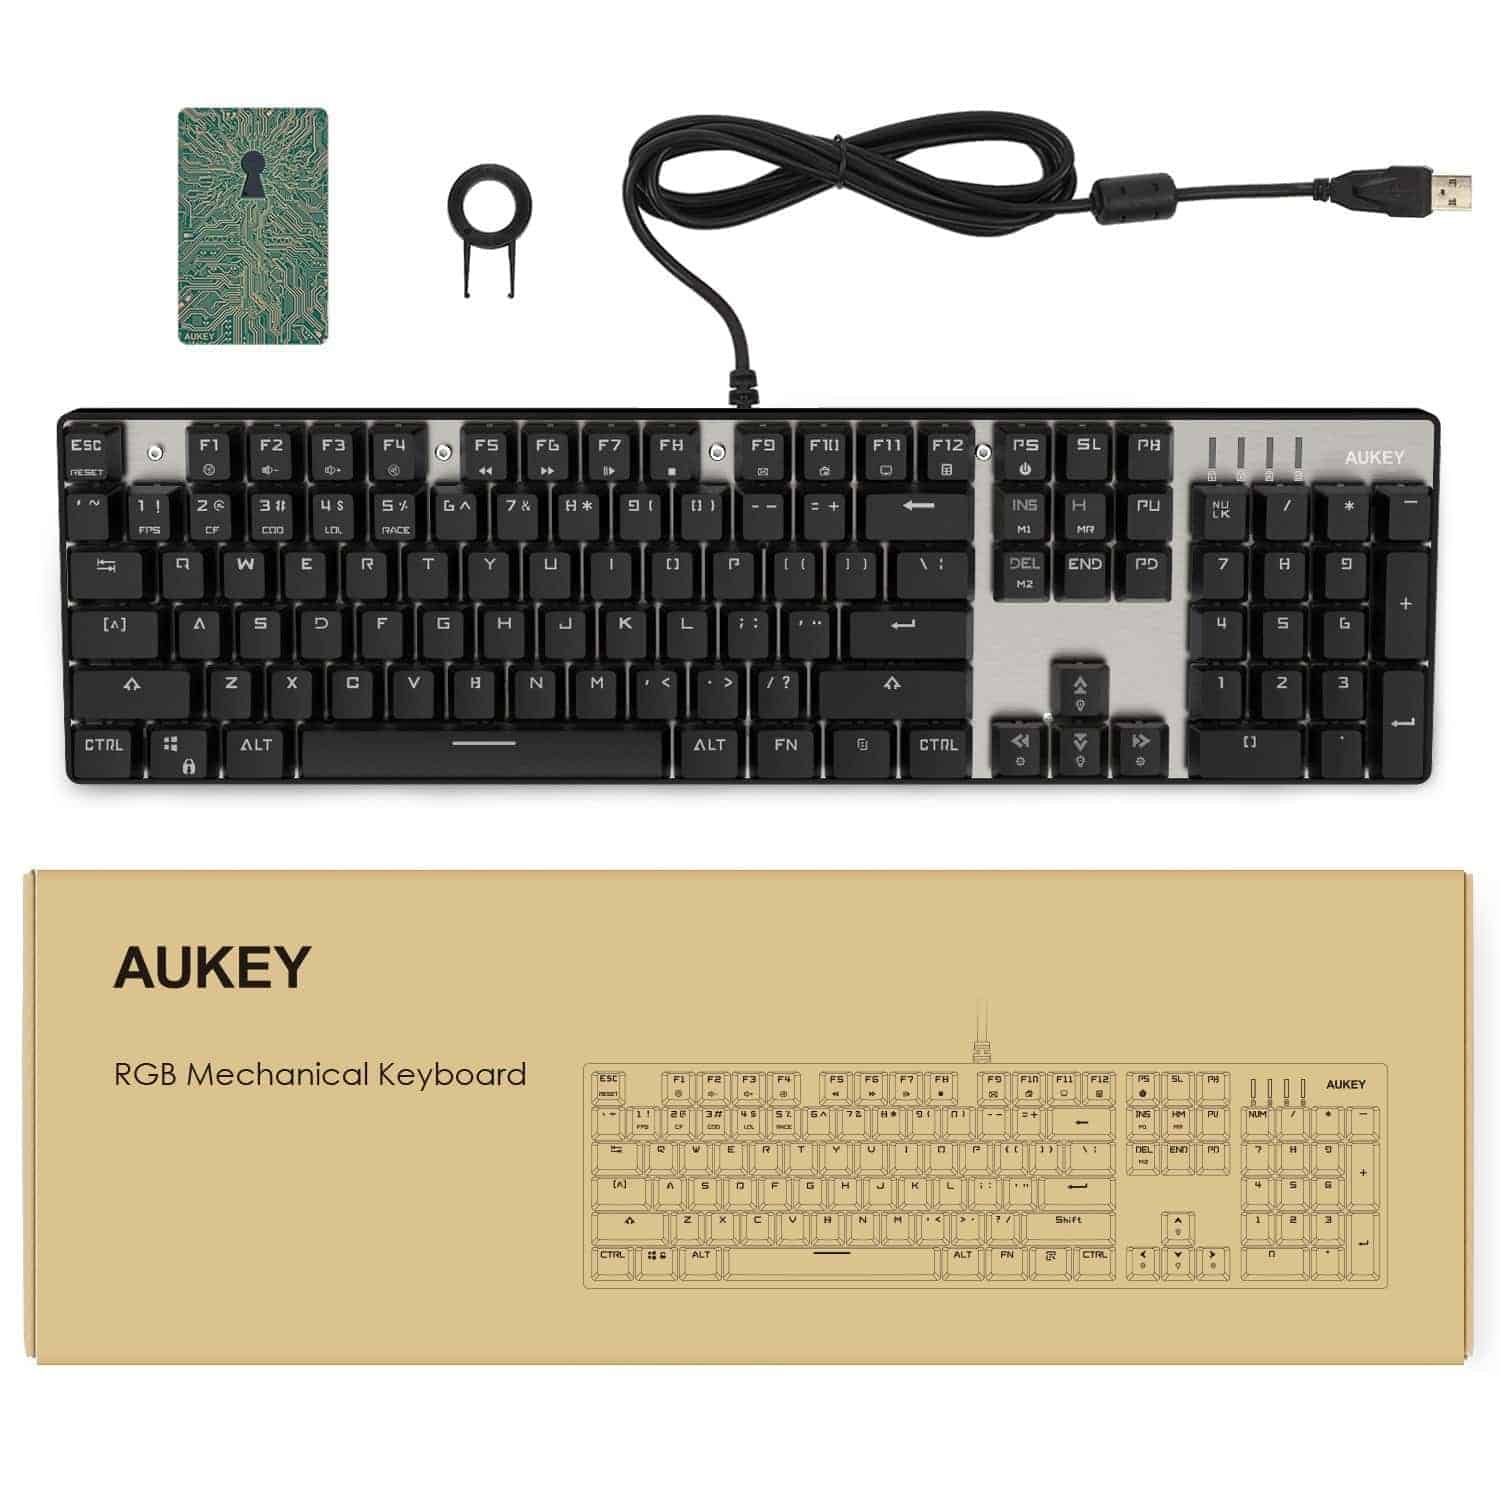 Amazon mechanical keyboard - Shop Amazon Prime Day